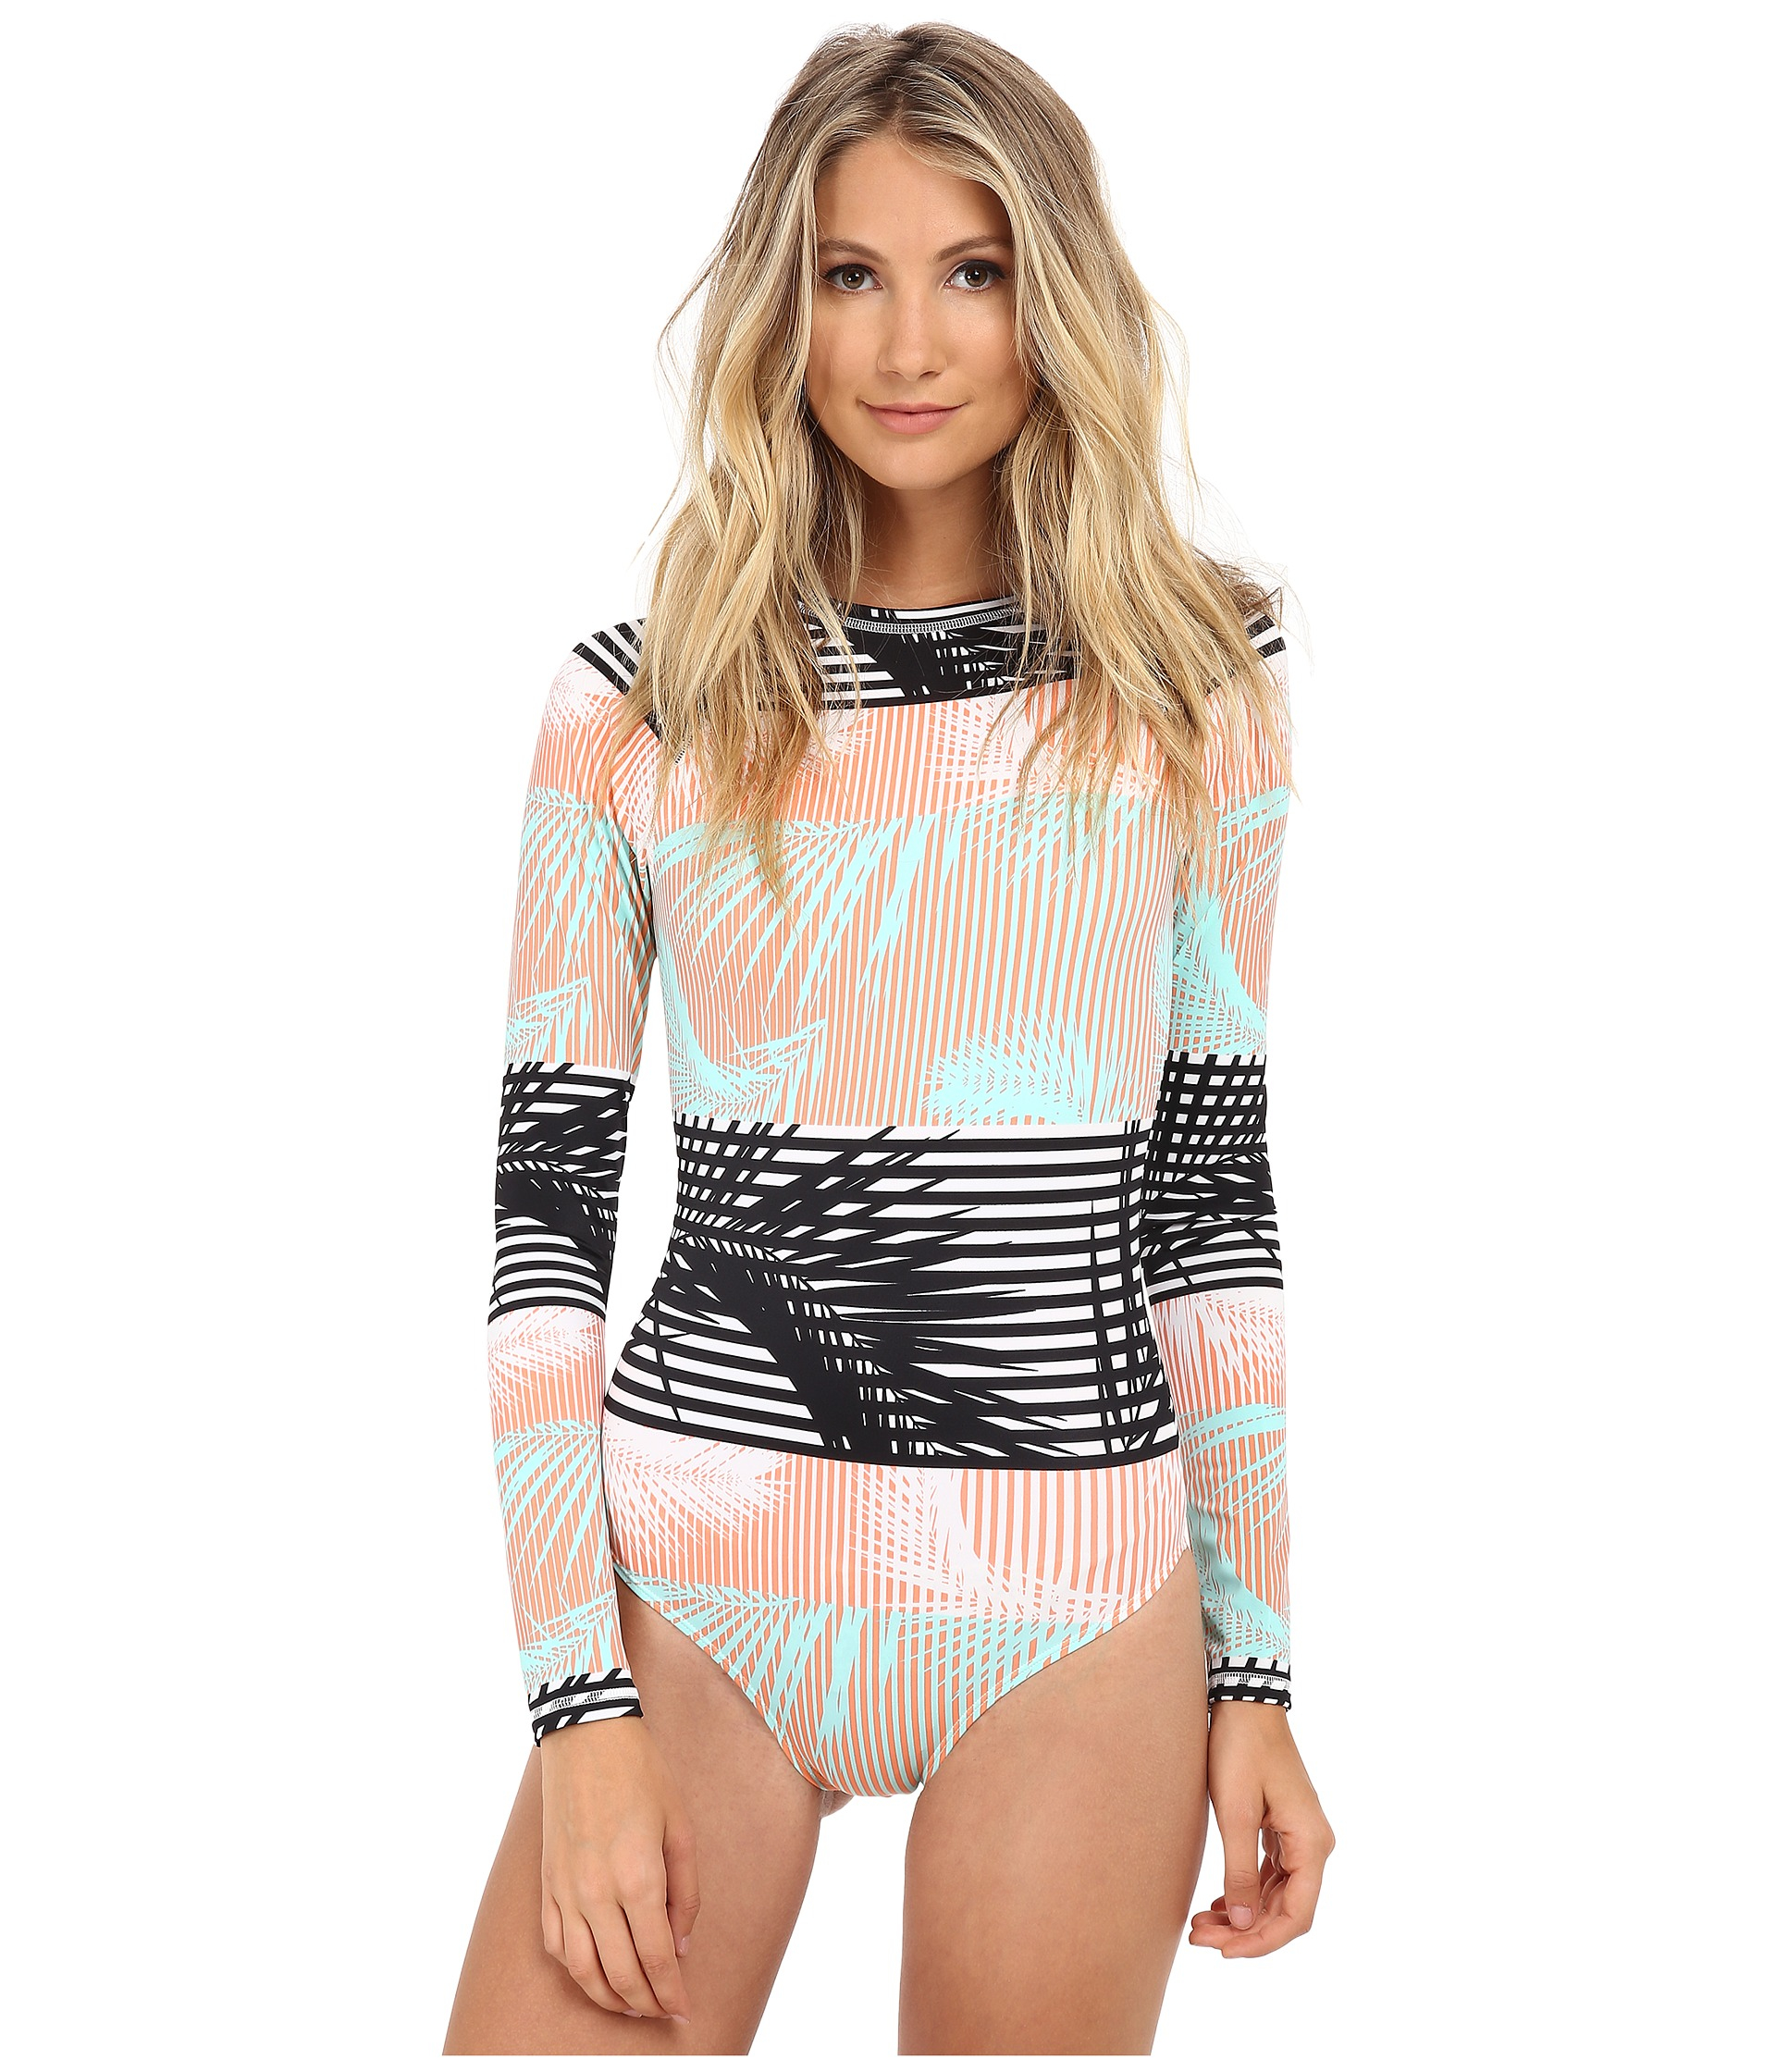 d3a21f9c44 Lyst - Roxy Pop Surf Long Sleeve One-piece in Pink